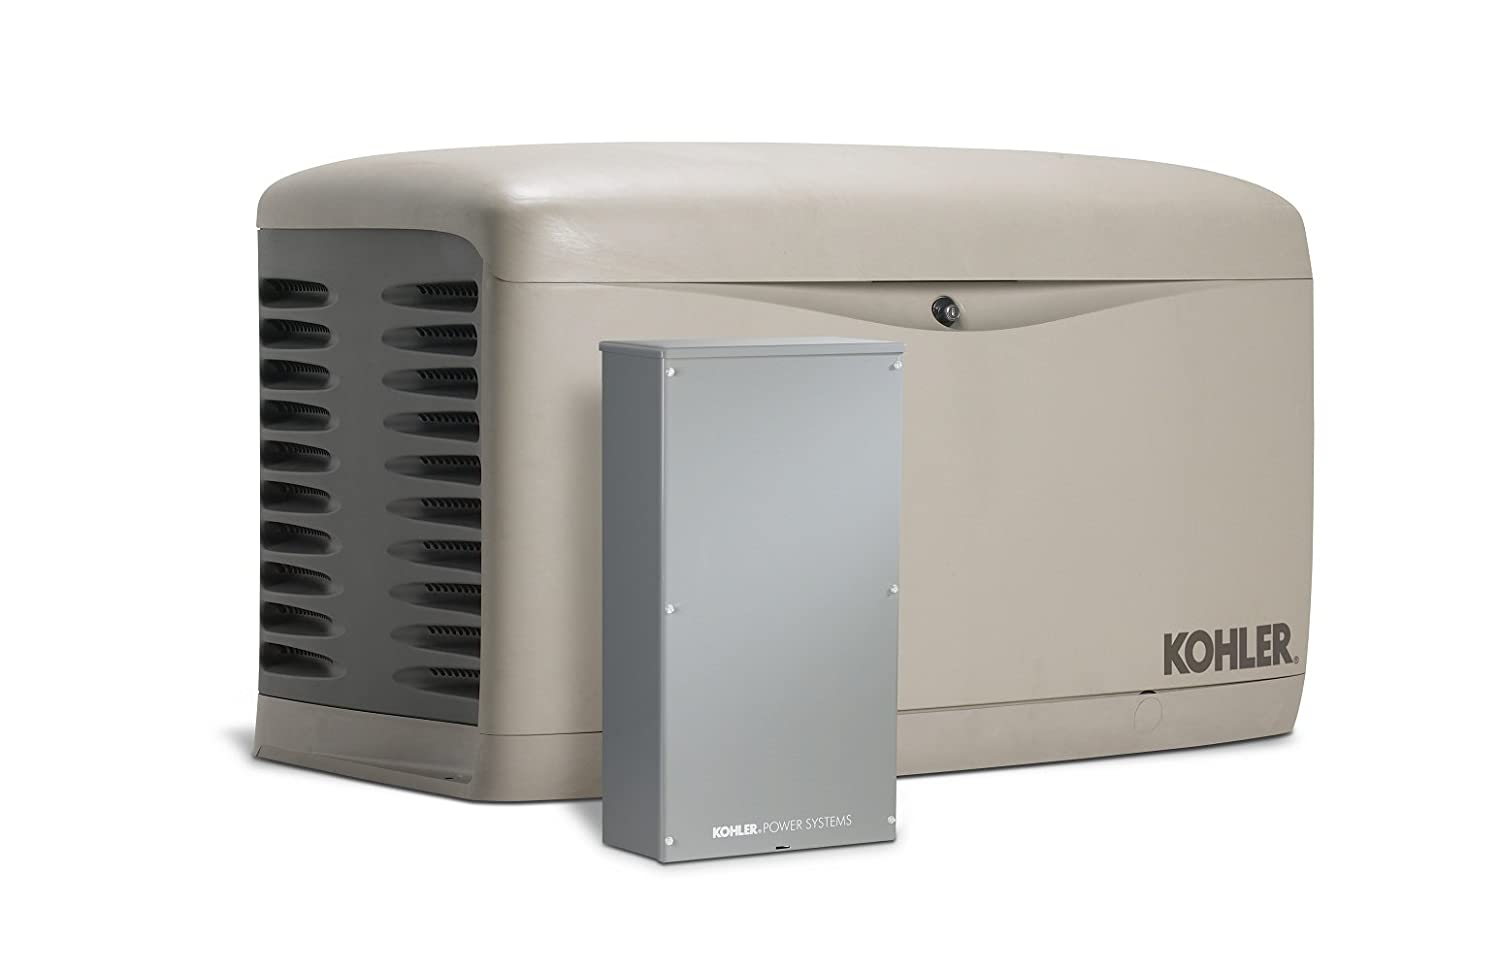 Kohler 20RESAL-200SELS 20,000-Watt Air-Cooled Standby Generator with 200 Amp Whole-House, Service Entrance Rated, Load Shedding Automatic Transfer Switch